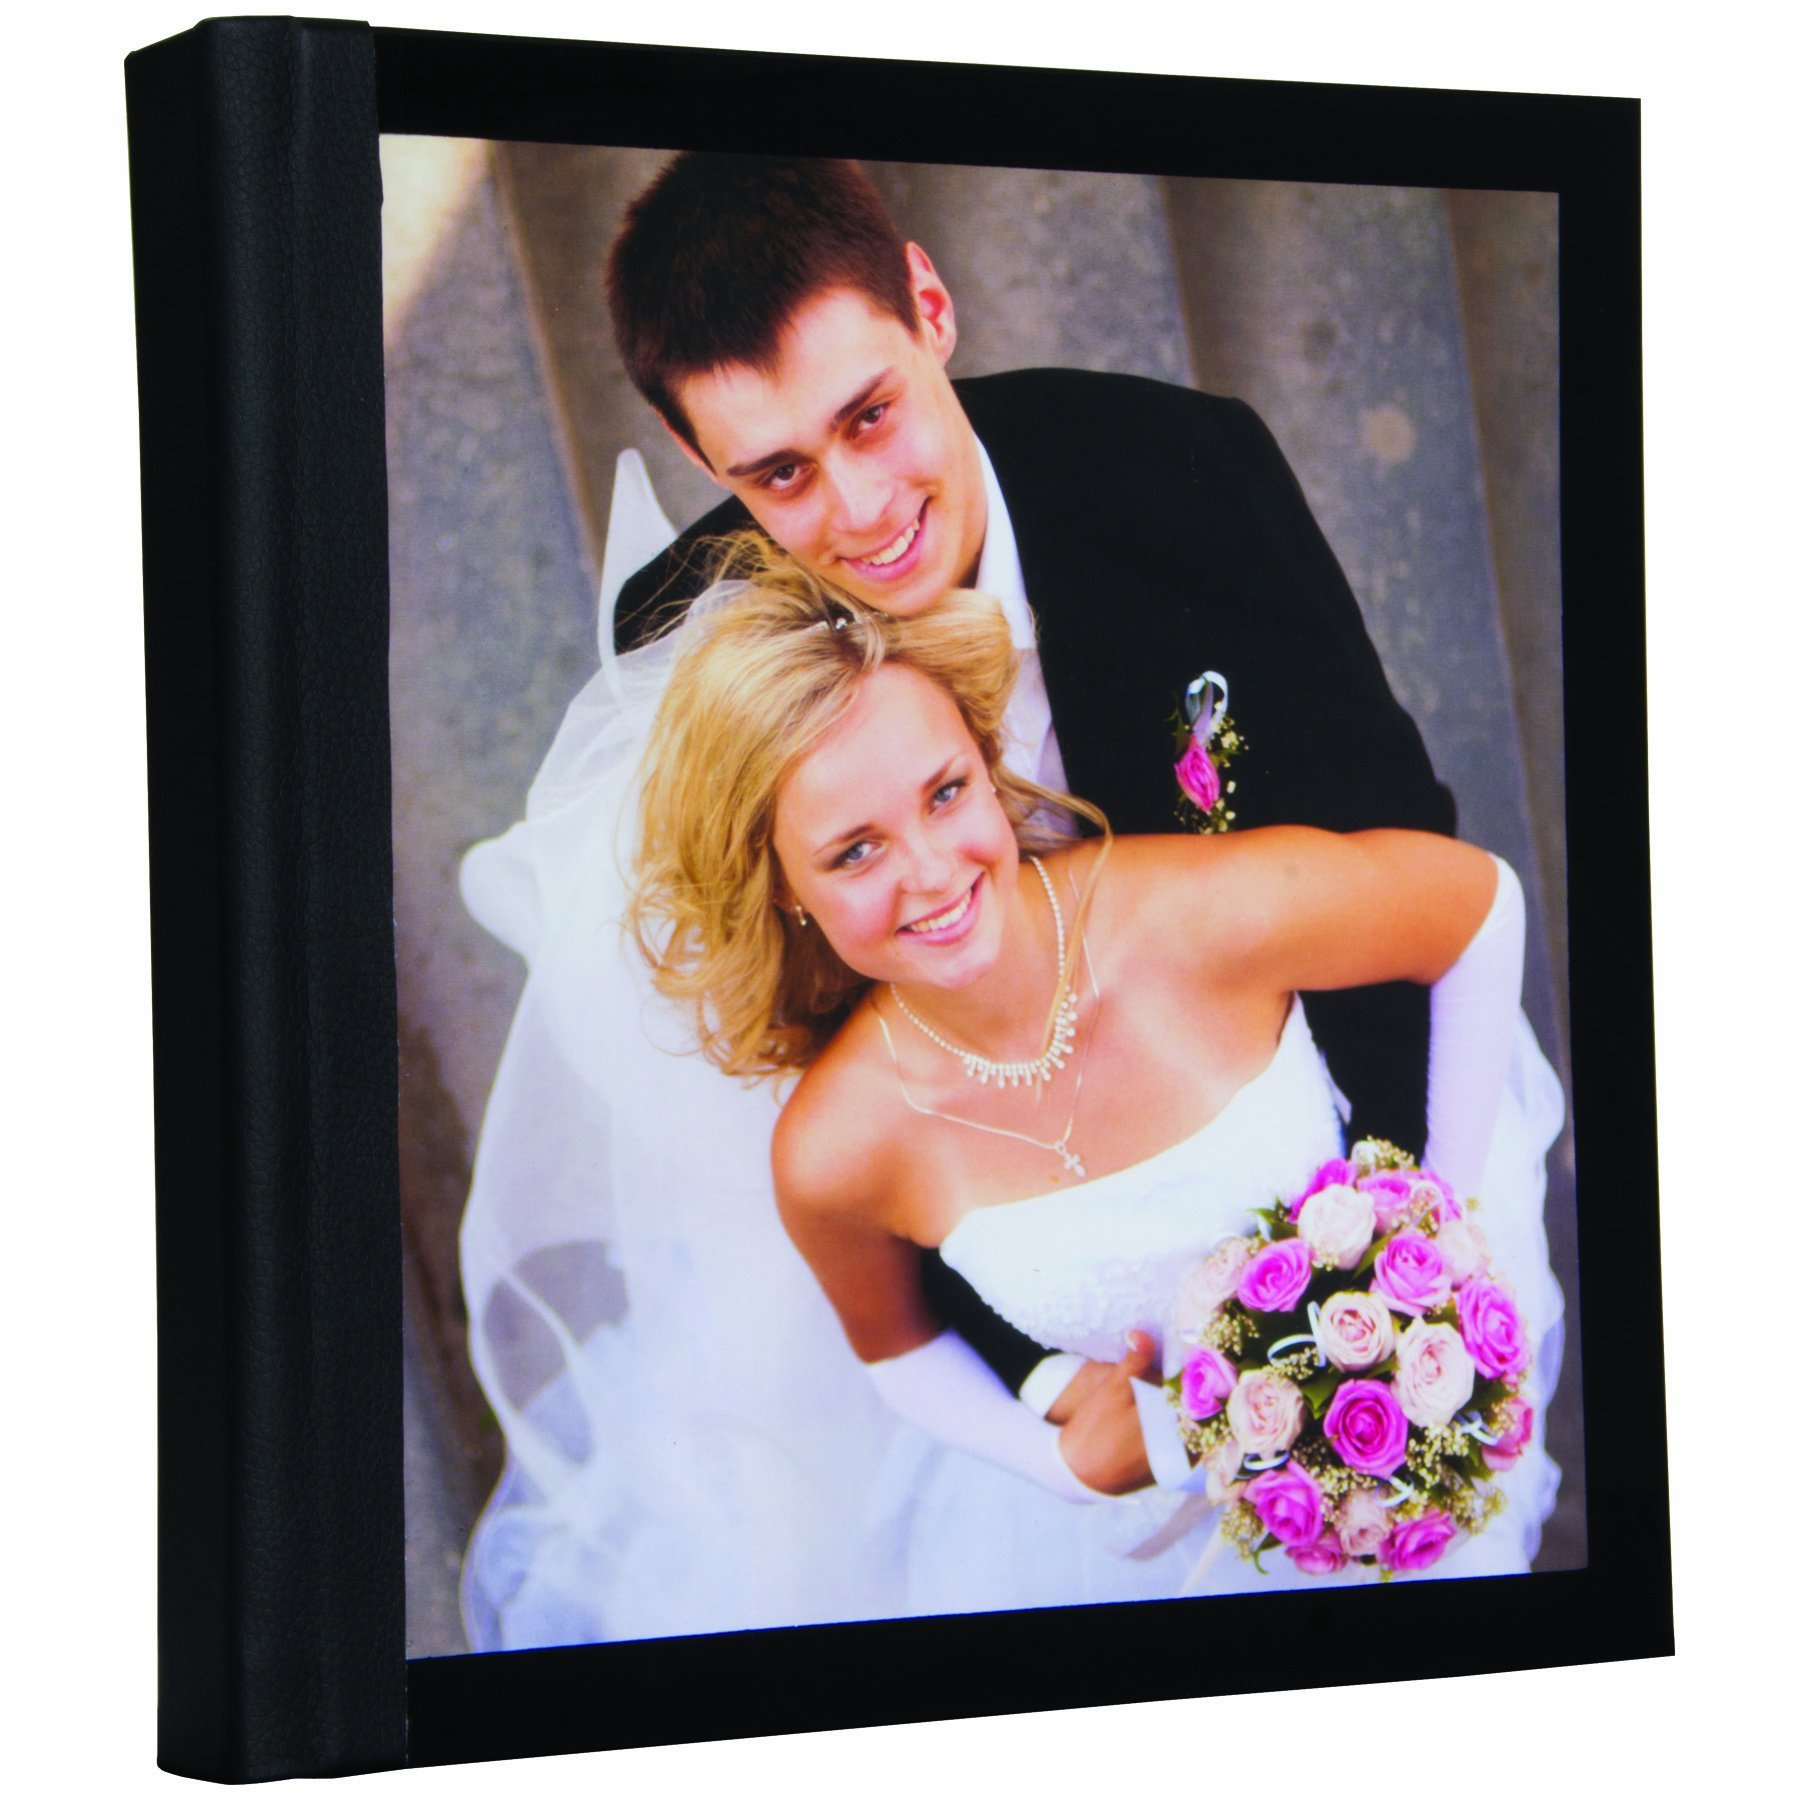 10x10 Acrylic Cover Self-Stick Album - Case of 6 by Neil Enterprises, Inc